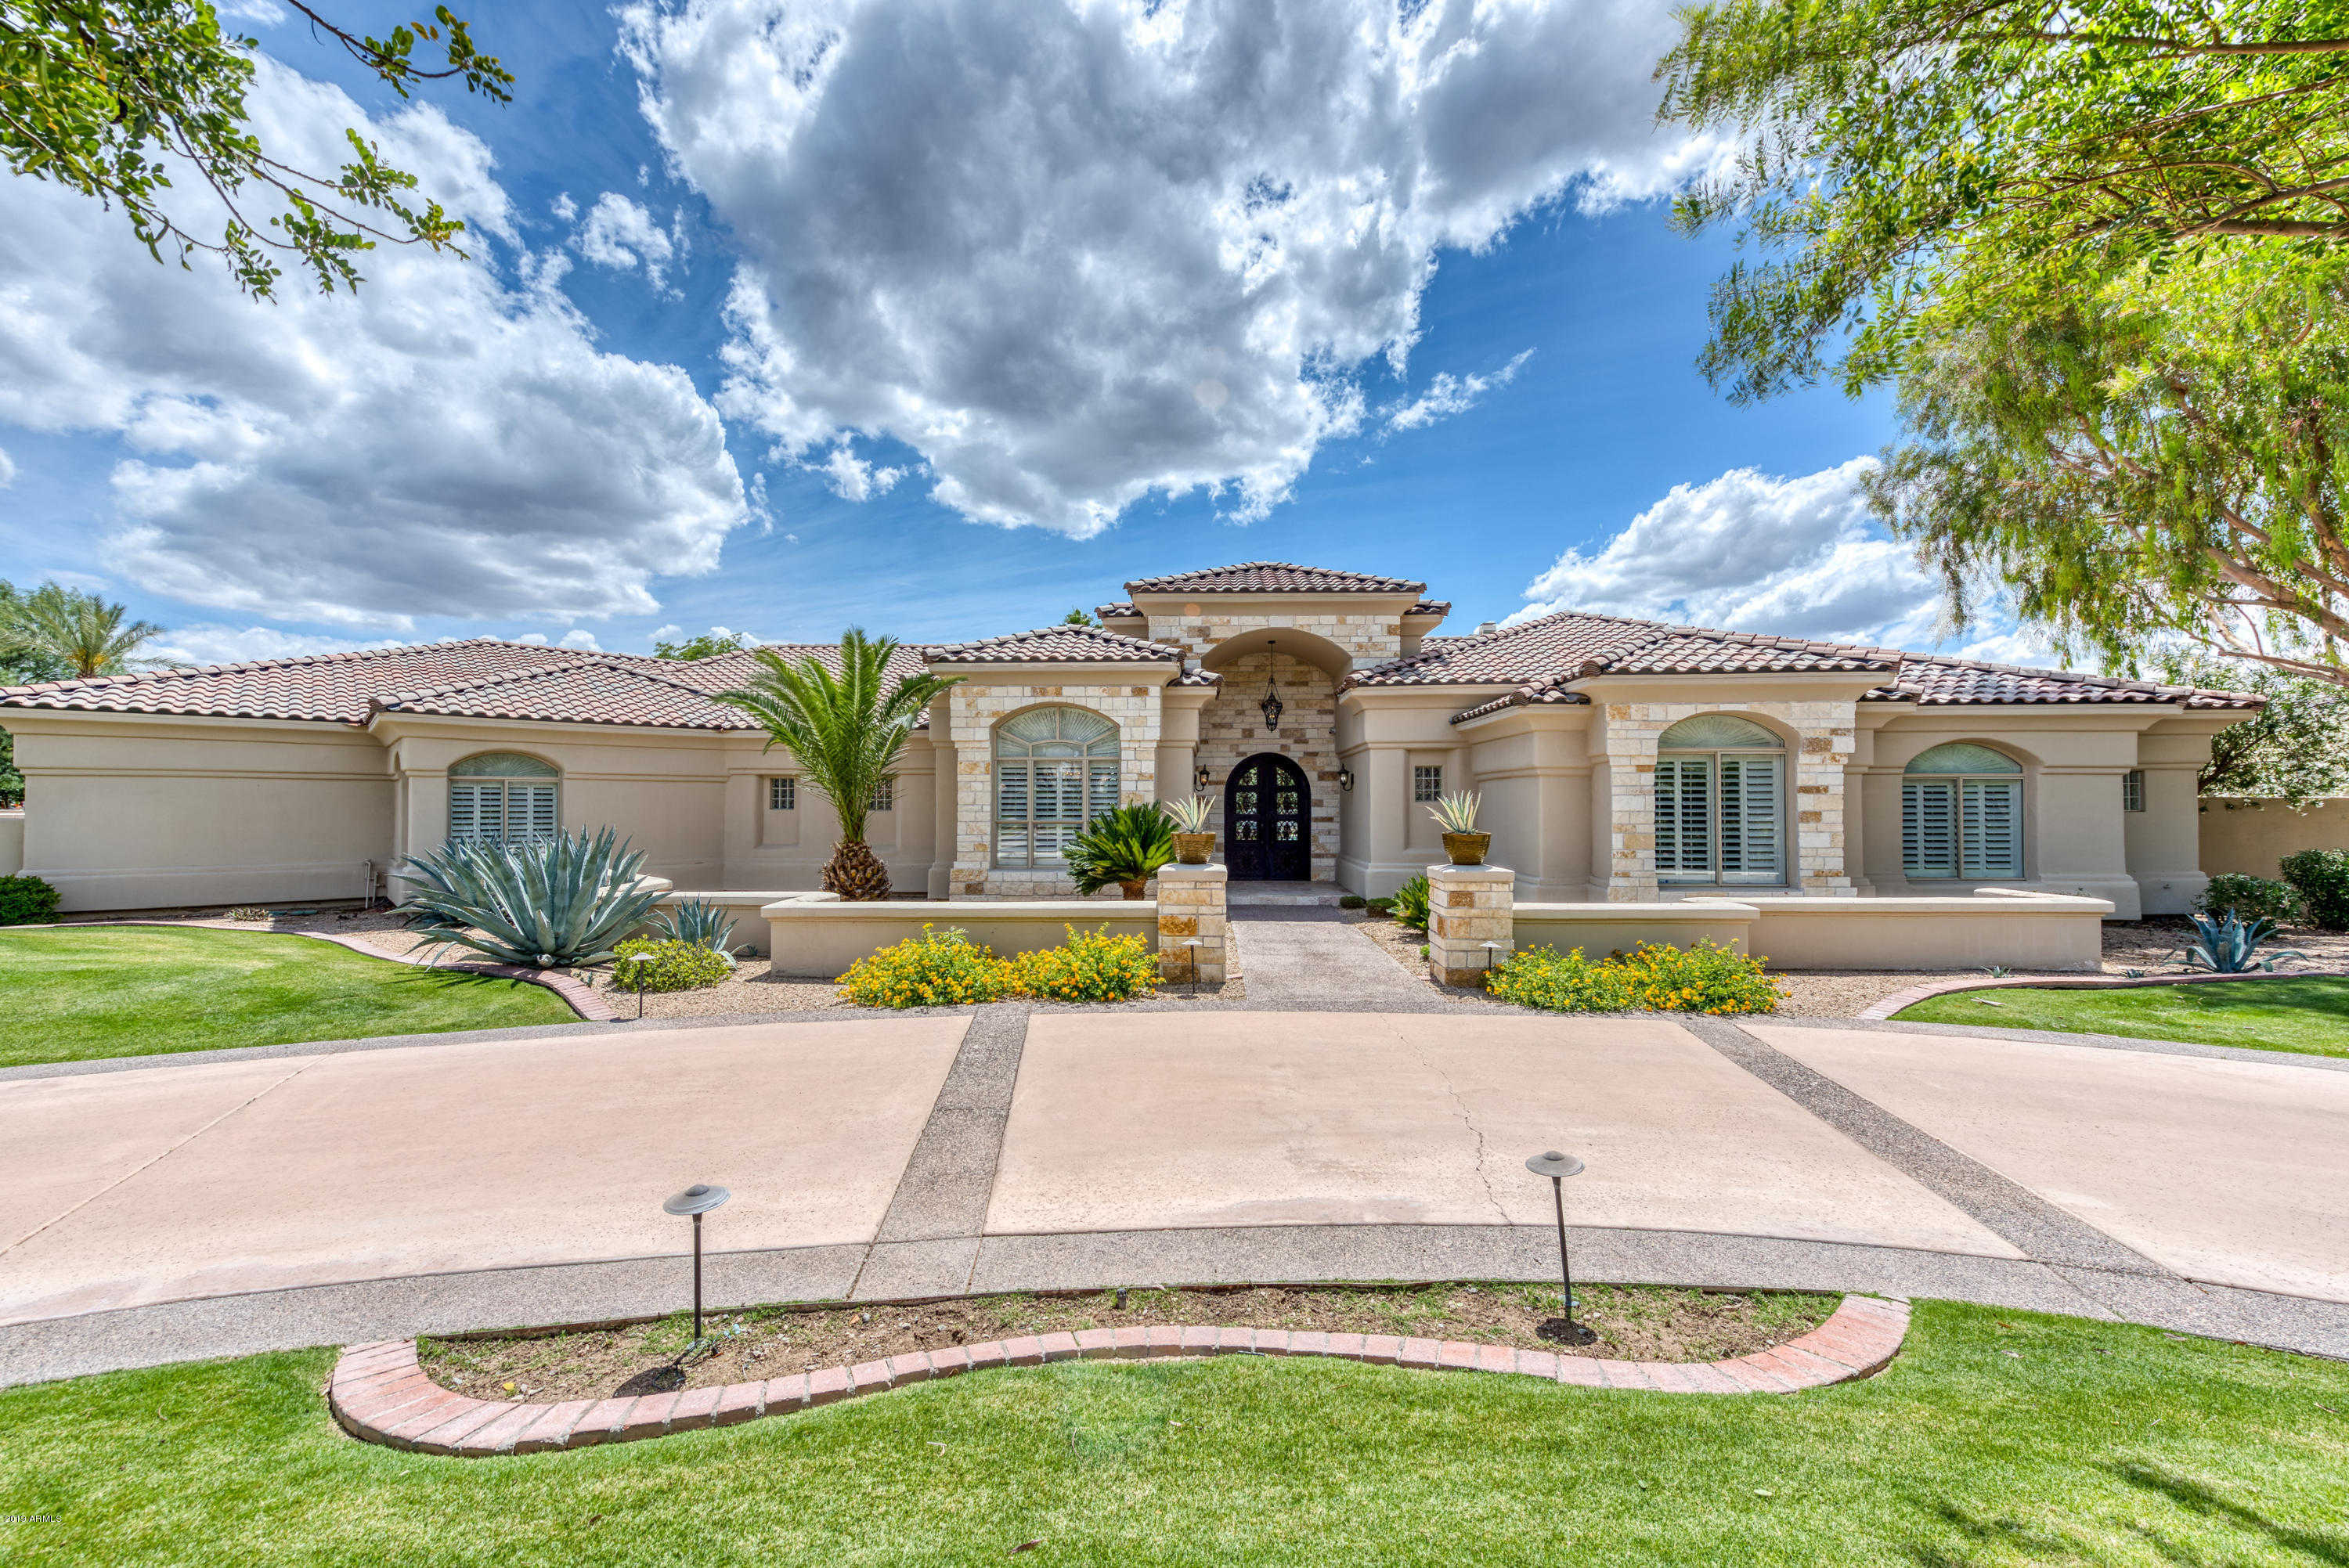 $1,895,000 - 4Br/5Ba - Home for Sale in Ironwood At Camelback Country Club, Paradise Valley